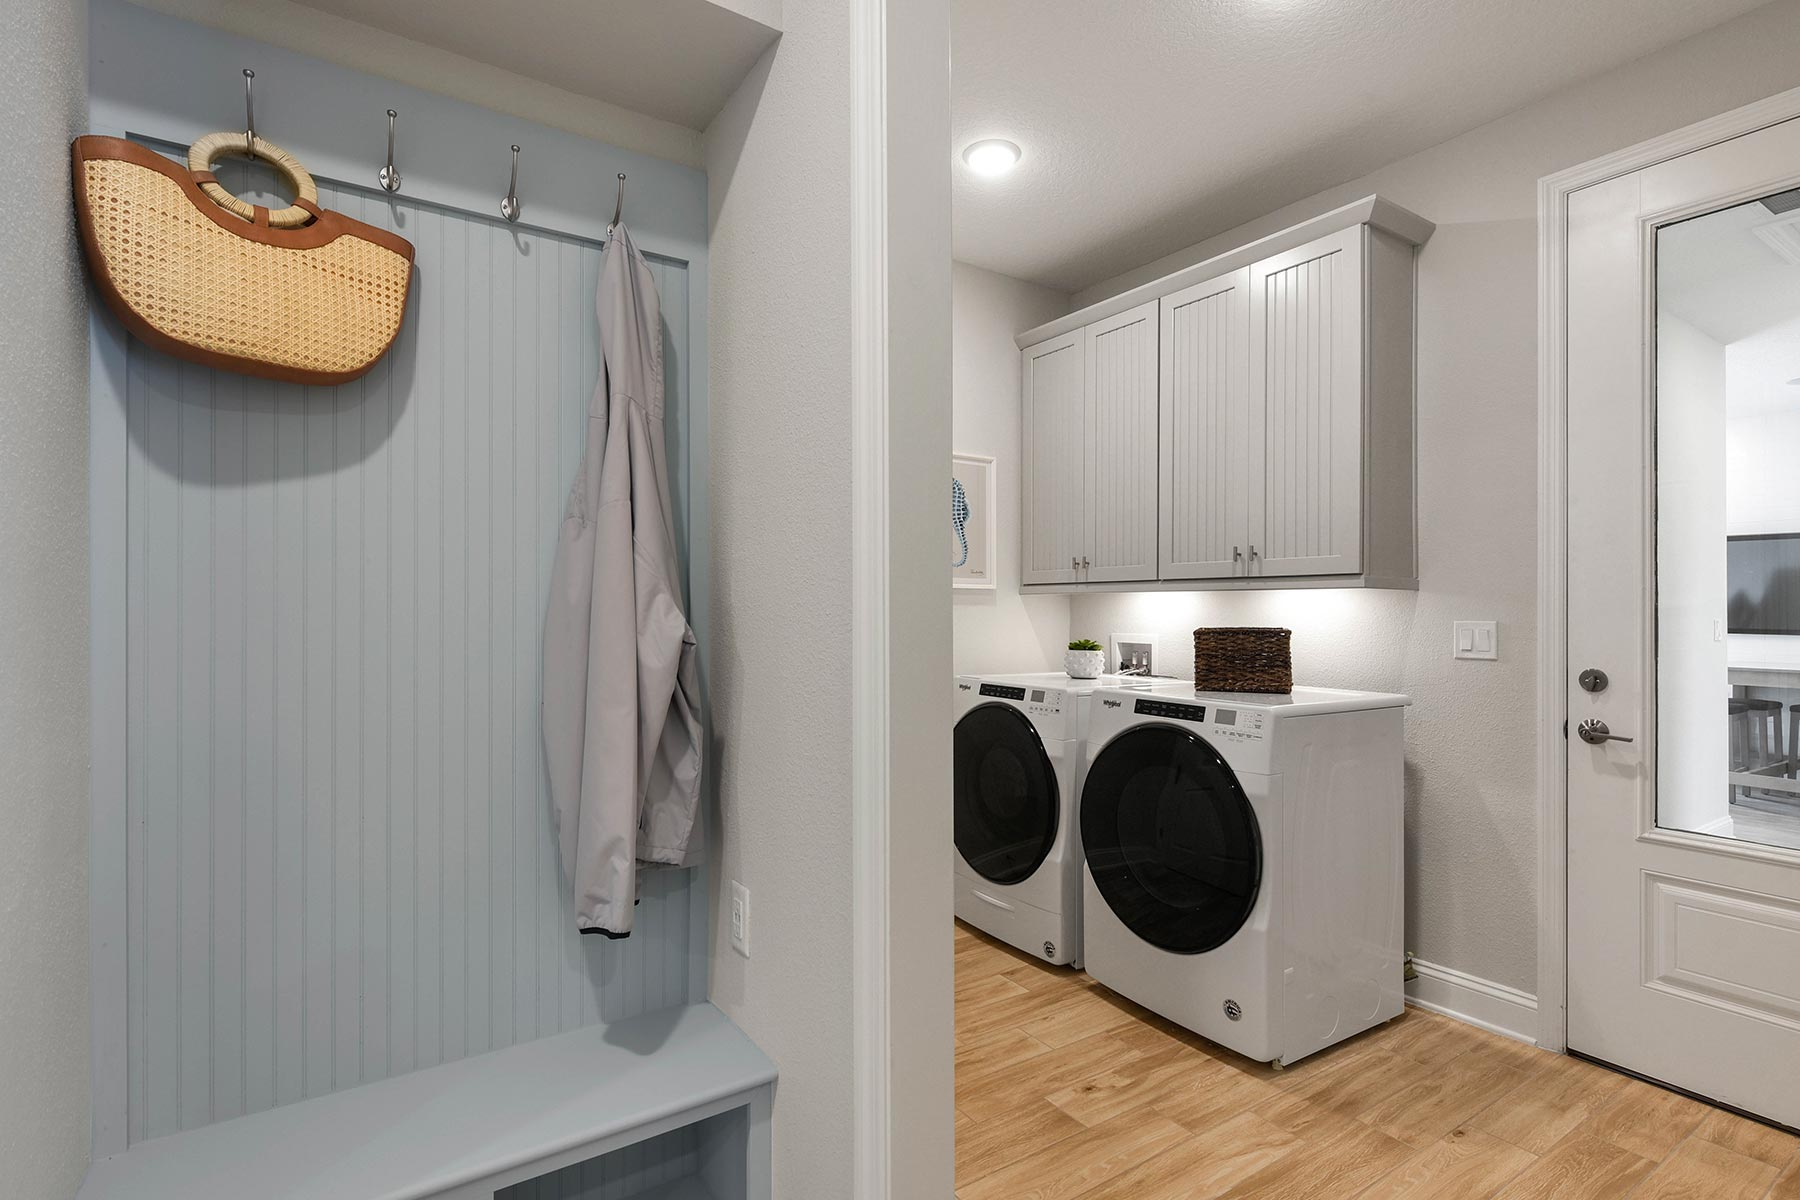 Ocean Plan Laundry at RiverTown - WaterSong in St. Johns Florida by Mattamy Homes